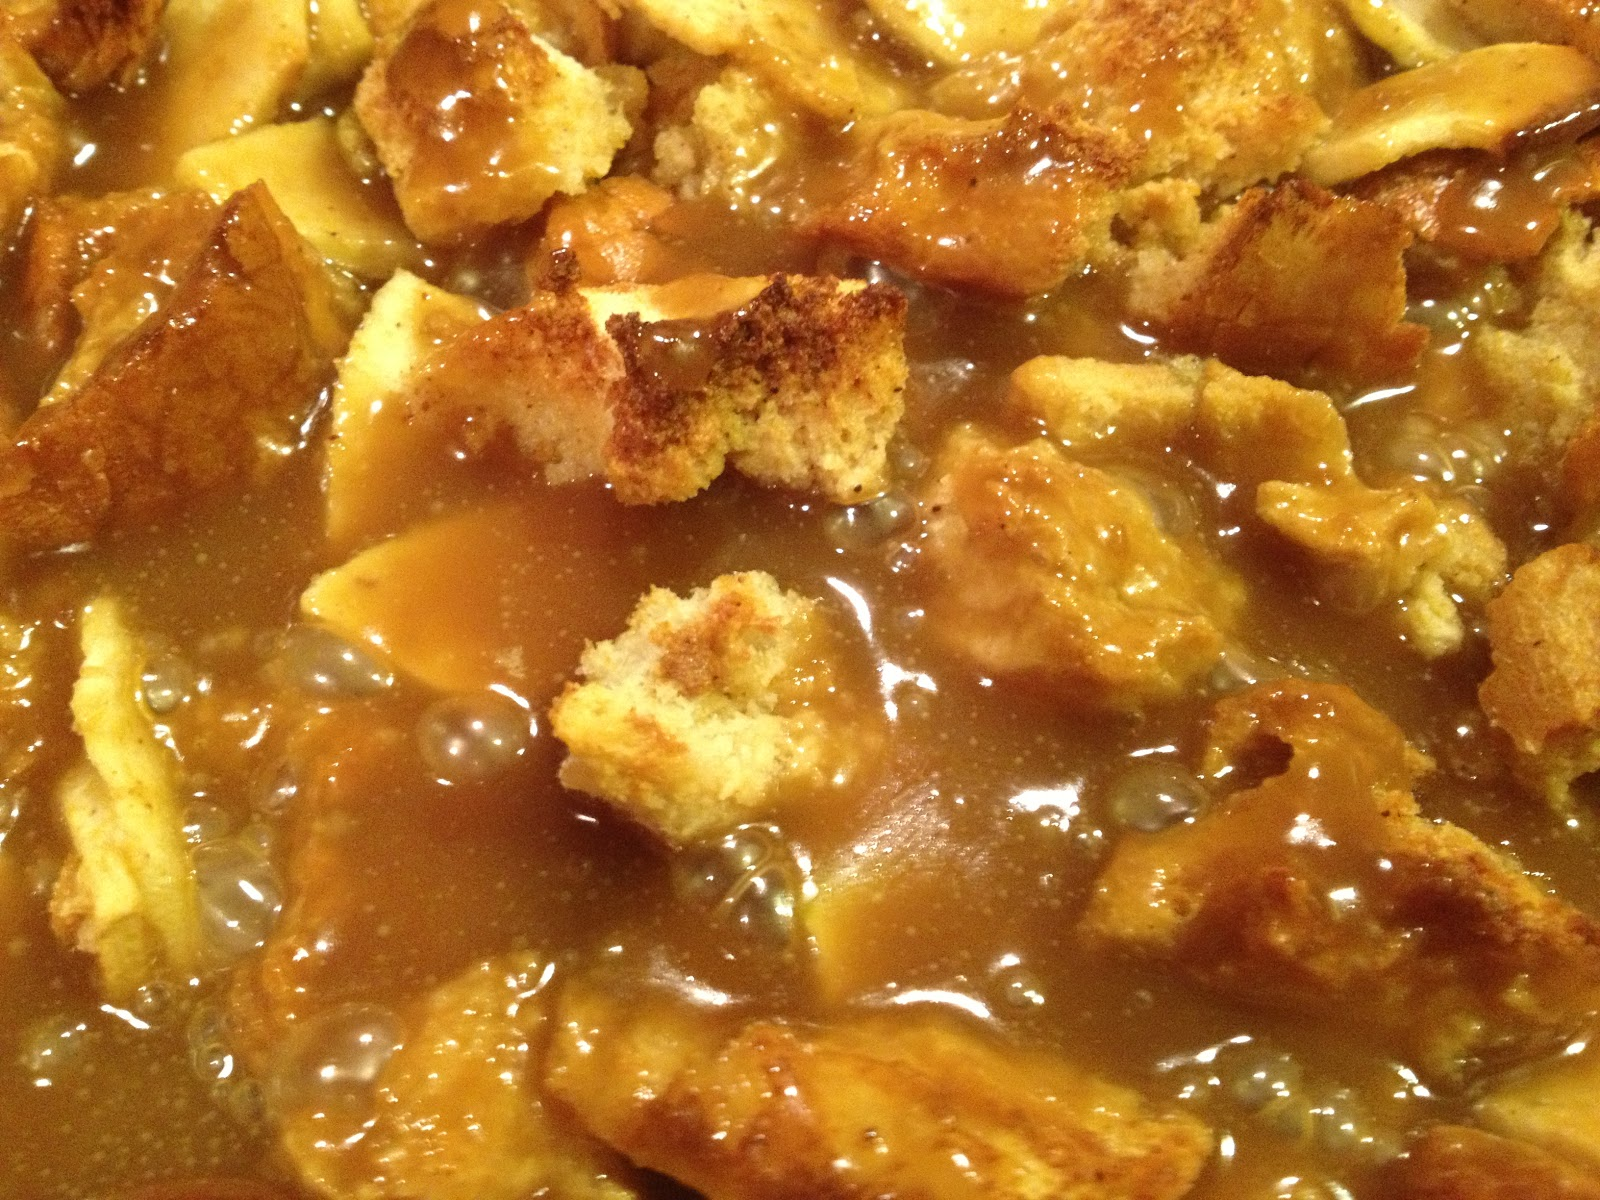 The Foodie Bunch: Caramel Apple Bread Pudding